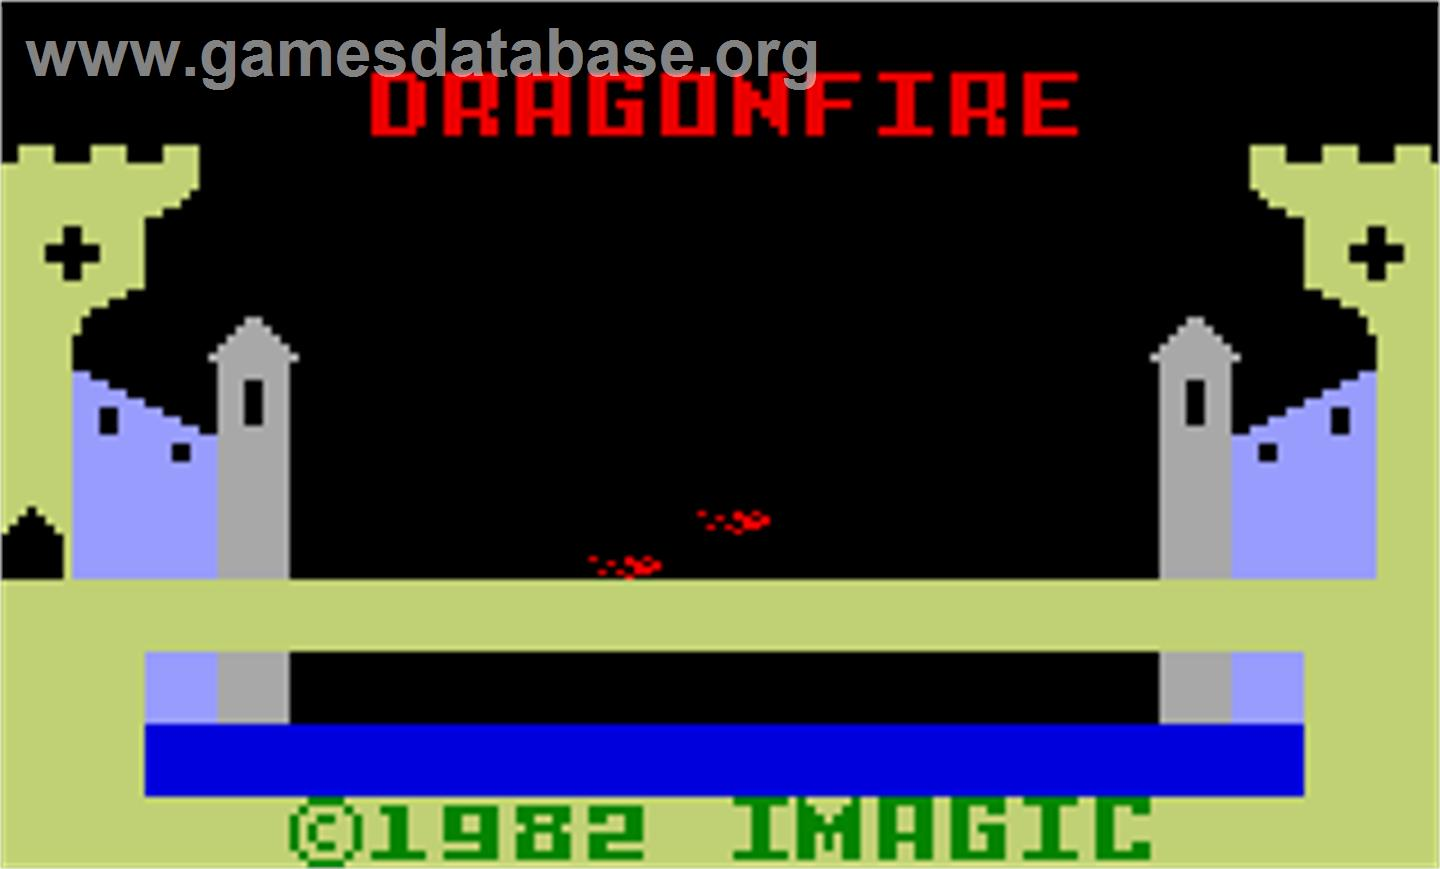 Dragon Fire - Mattel Intellivision - Artwork - Title Screen